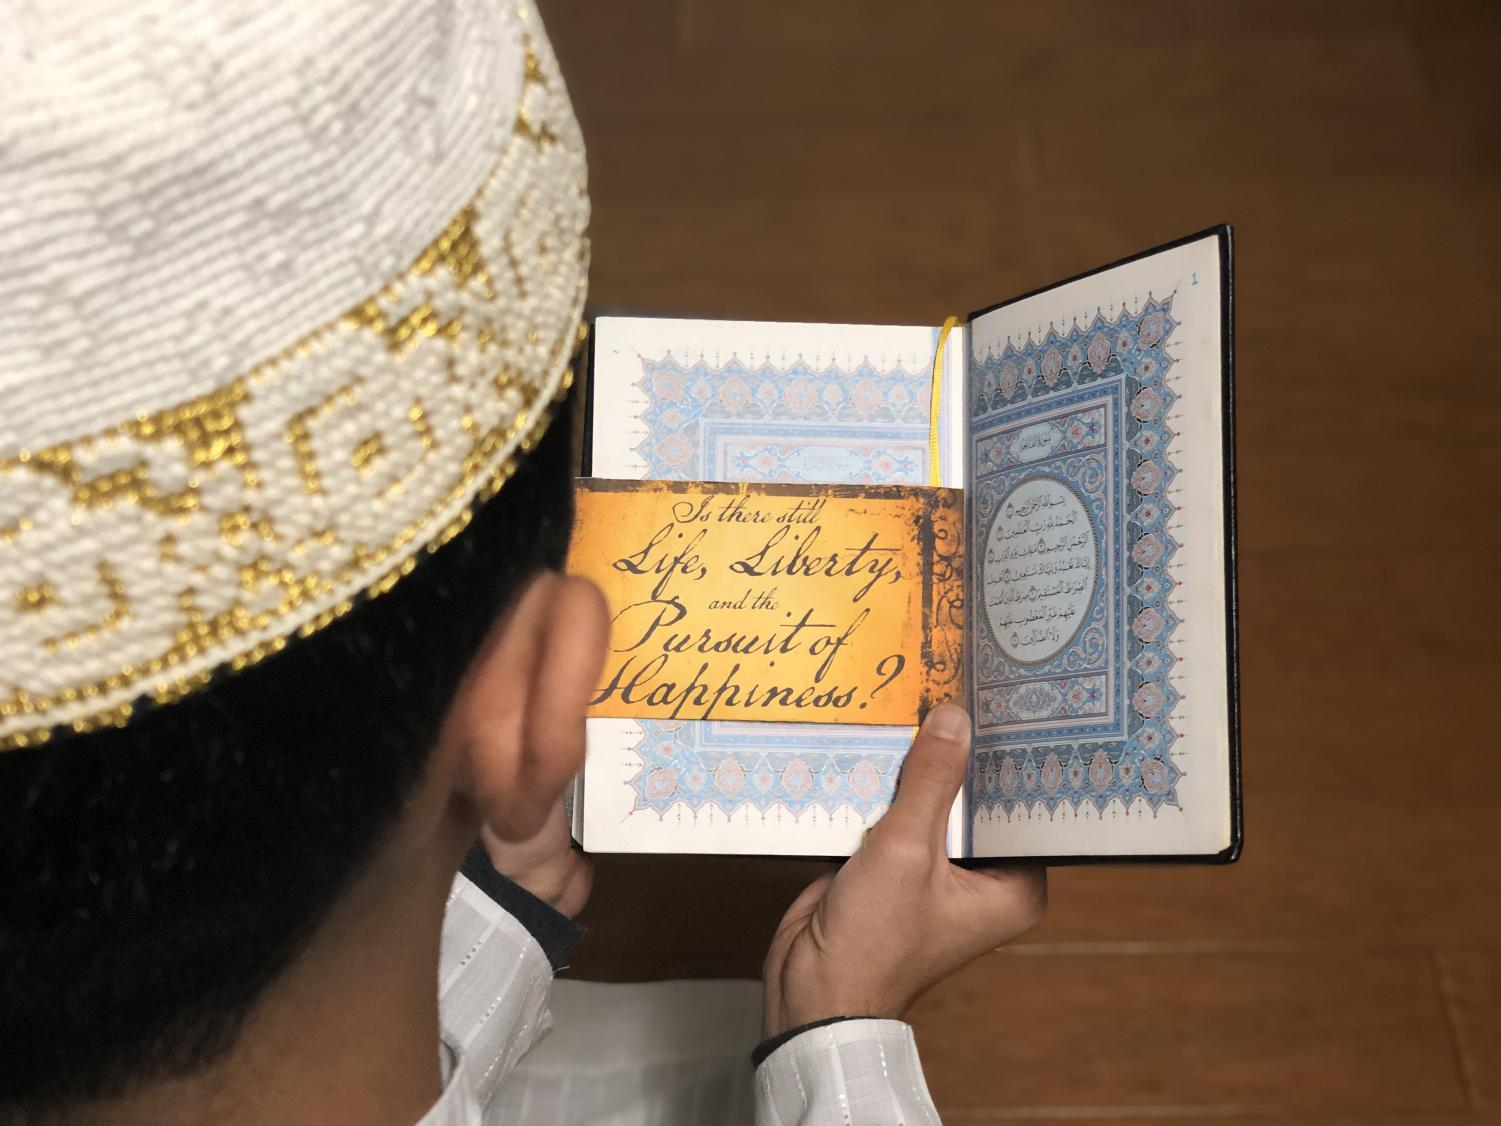 I'm Muslim — do I have the right to life, liberty and the pursuit of happiness?